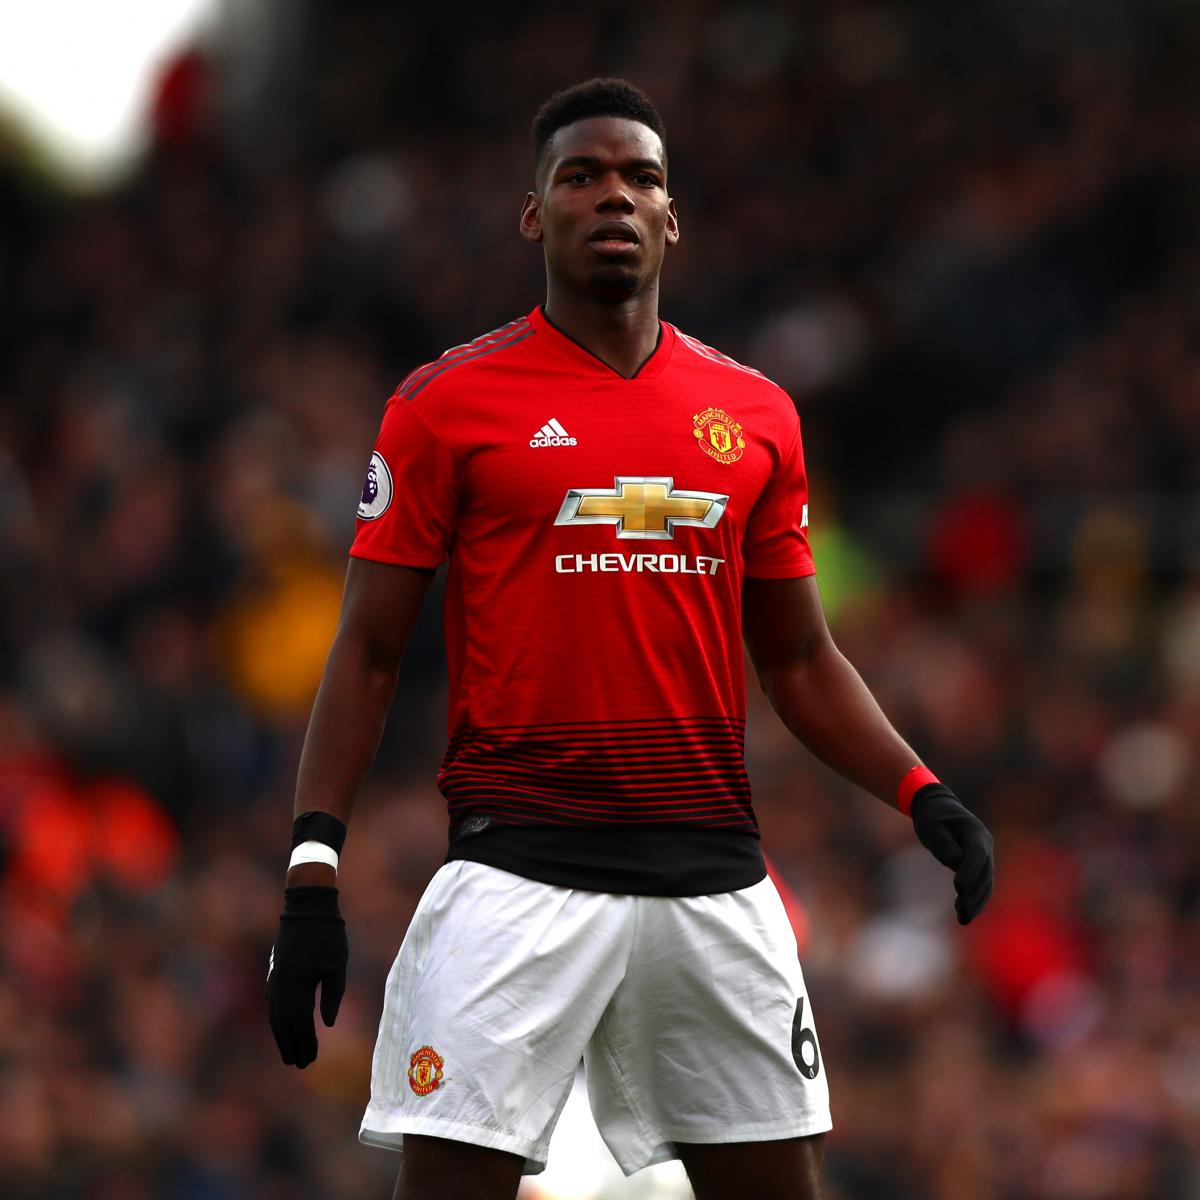 Manchester United Latest Transfer Window: Paul Pogba Reportedly Wants Out Of Manchester United This